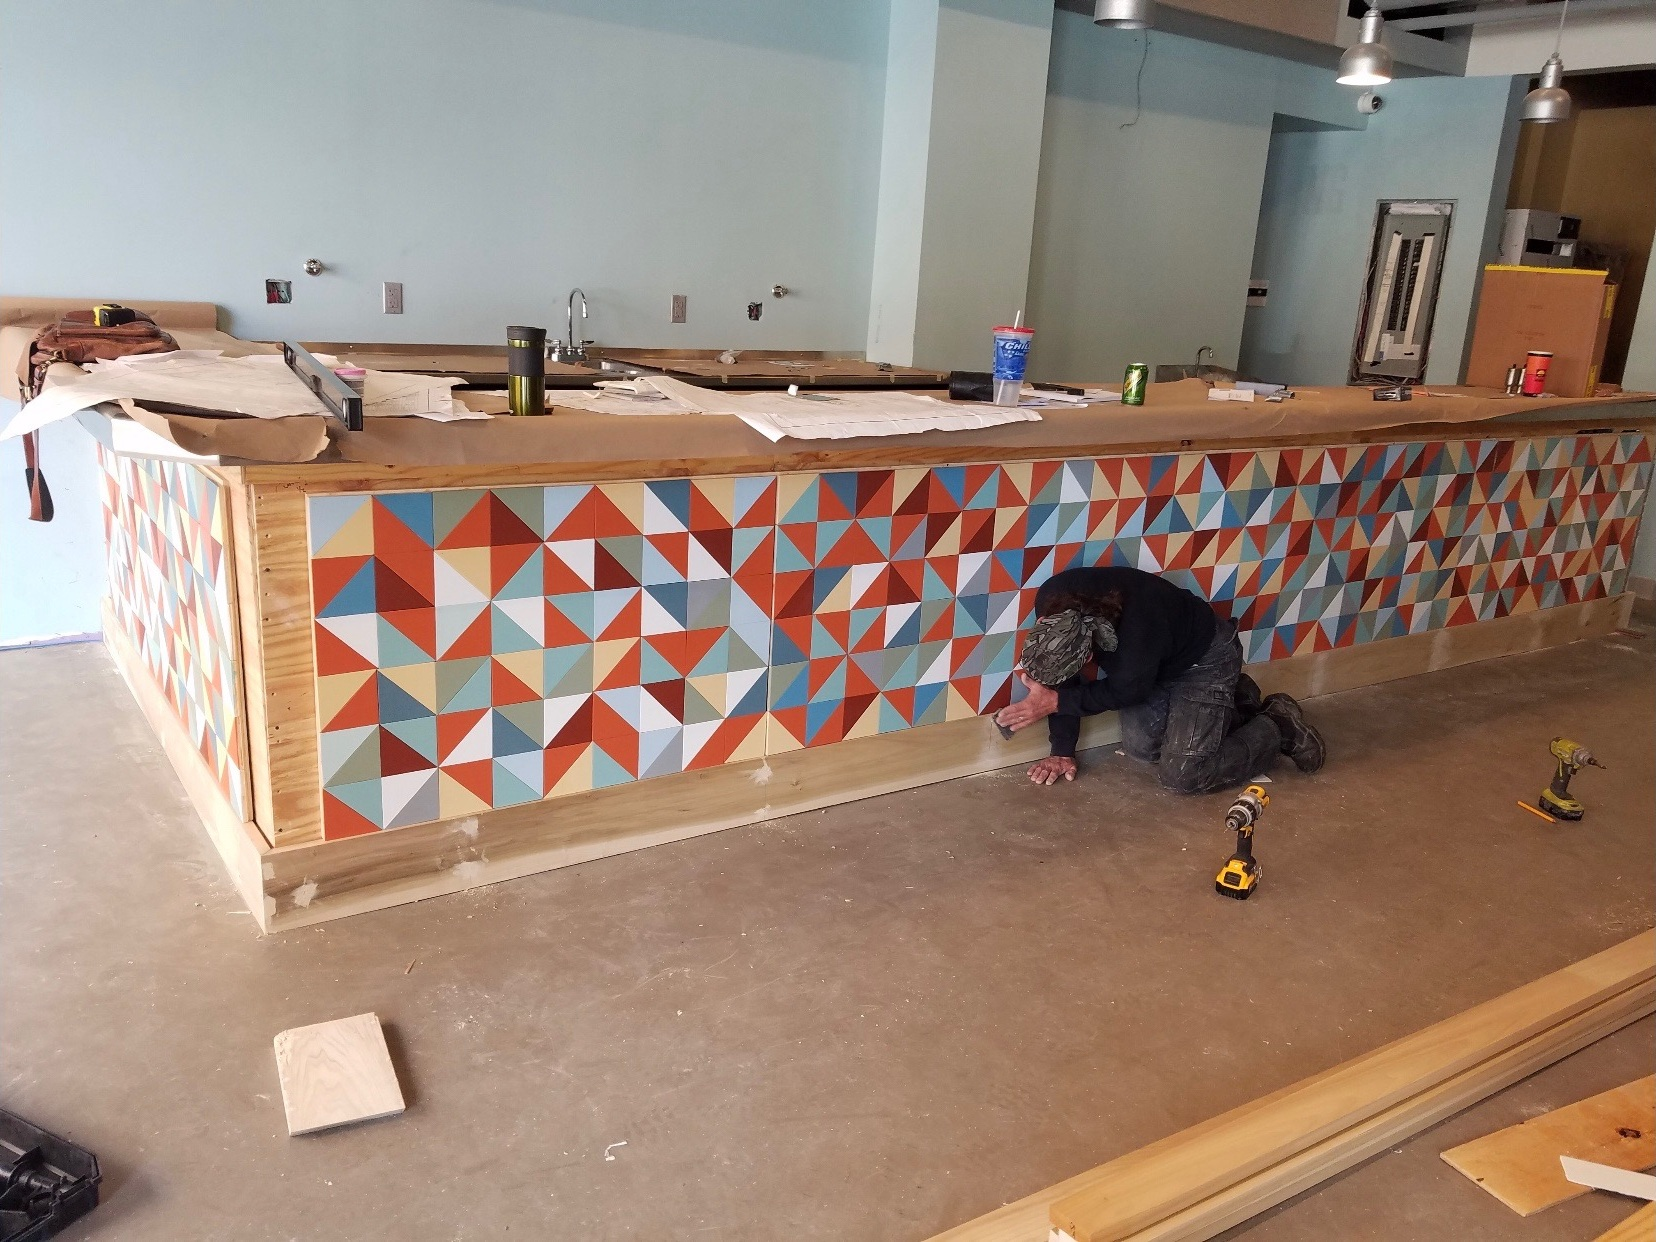 Carpenter trimming out the bar after installation.